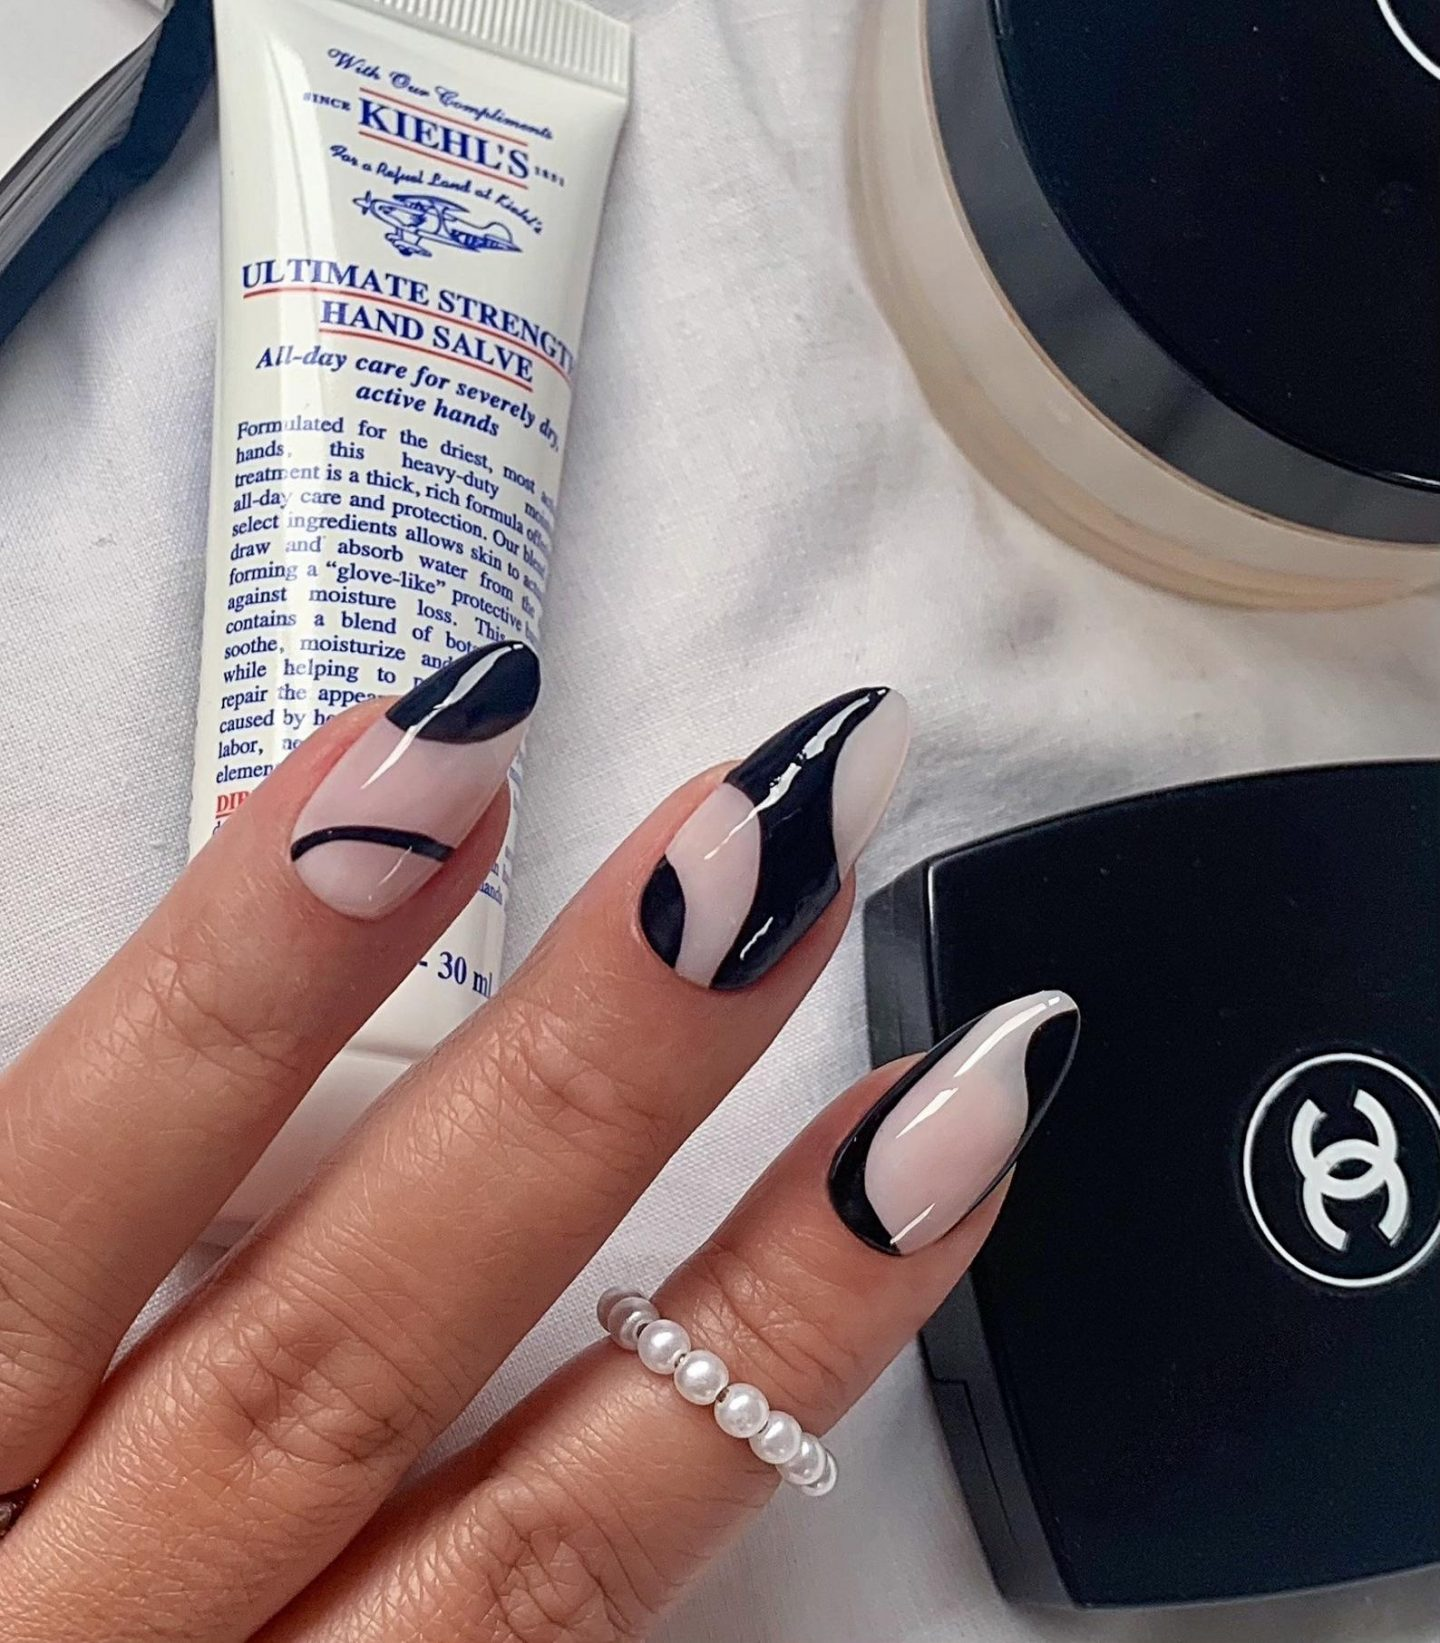 Abstract nails with black swirls and lines